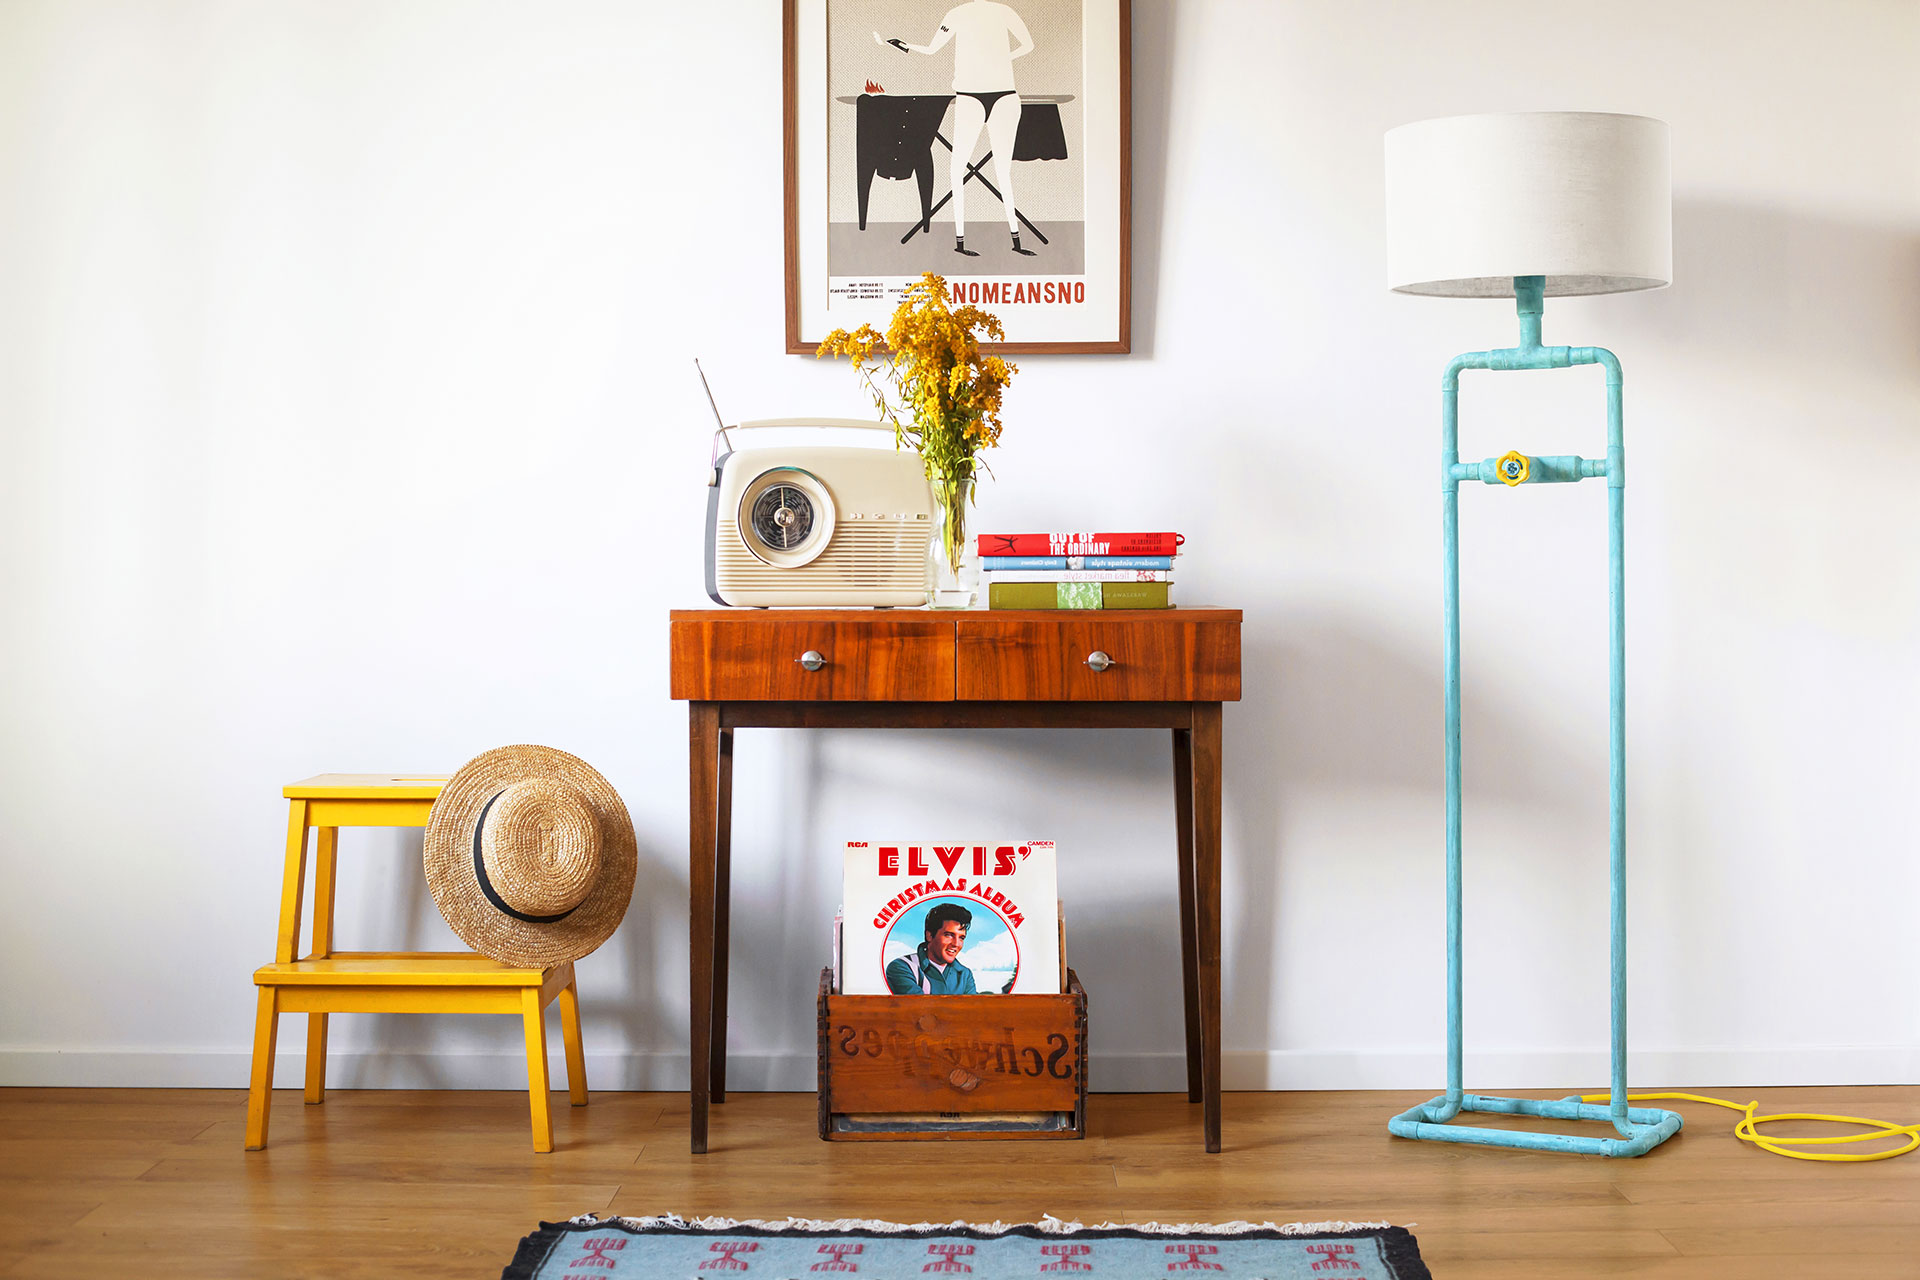 Loft style floor lamp in trendy turquoise patina with white linen shade in colorful chic apartment